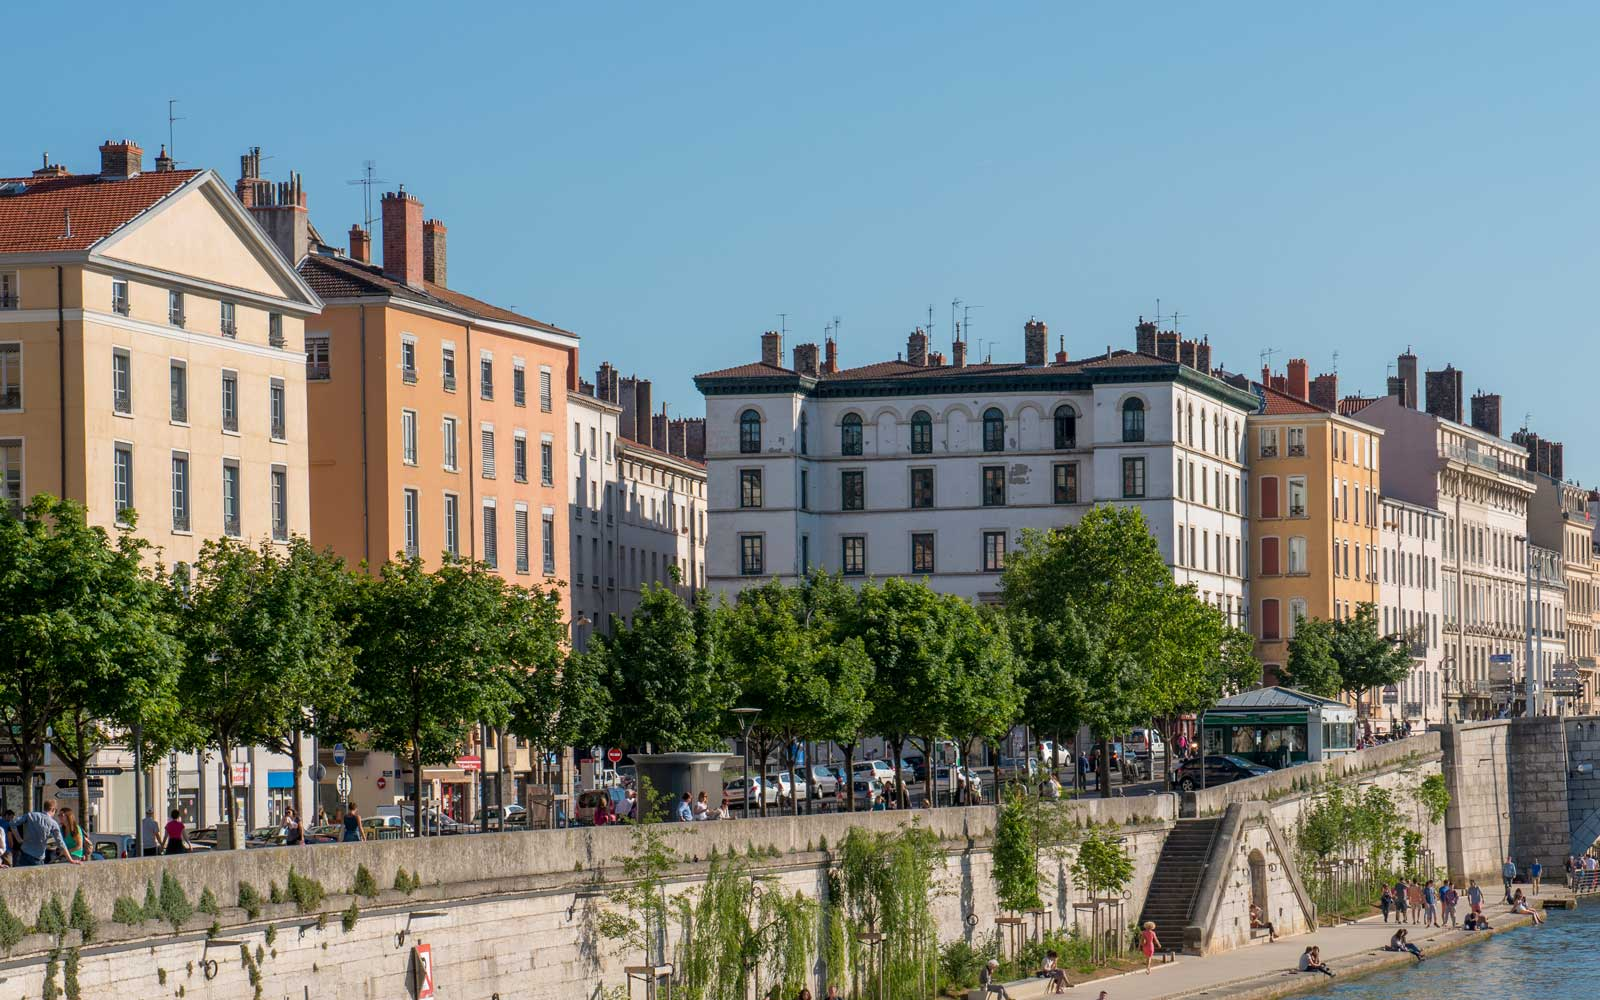 Promenade of the Saone River in Lyon, France